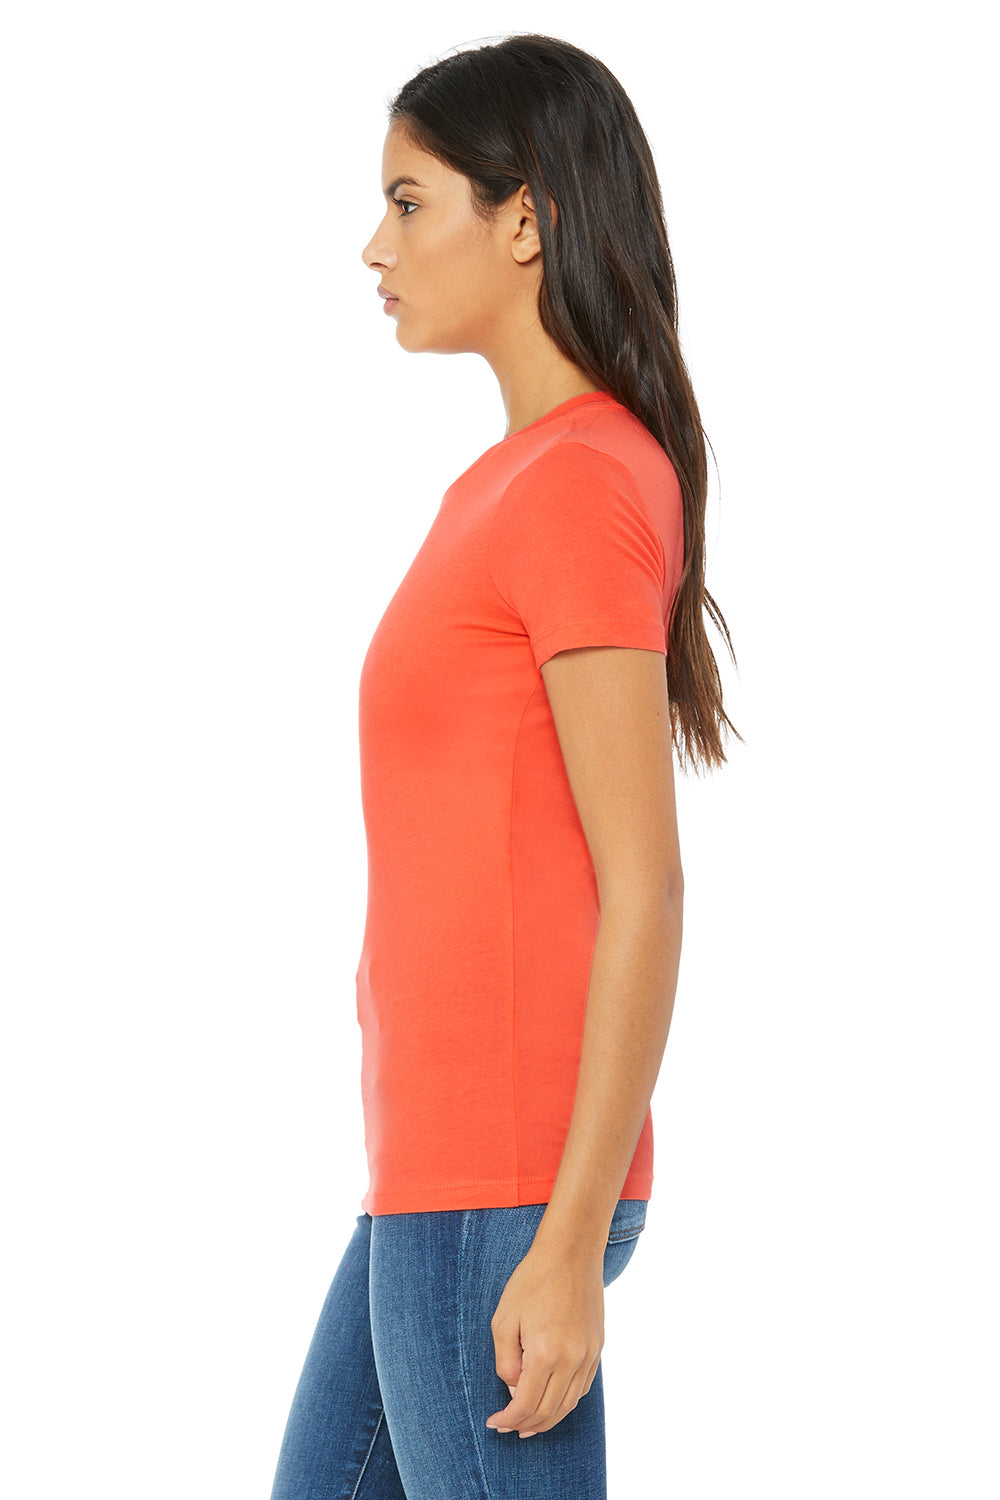 Bella + Canvas 6004 Womens The Favorite Short Sleeve Crewneck T-Shirt Coral Orange Side